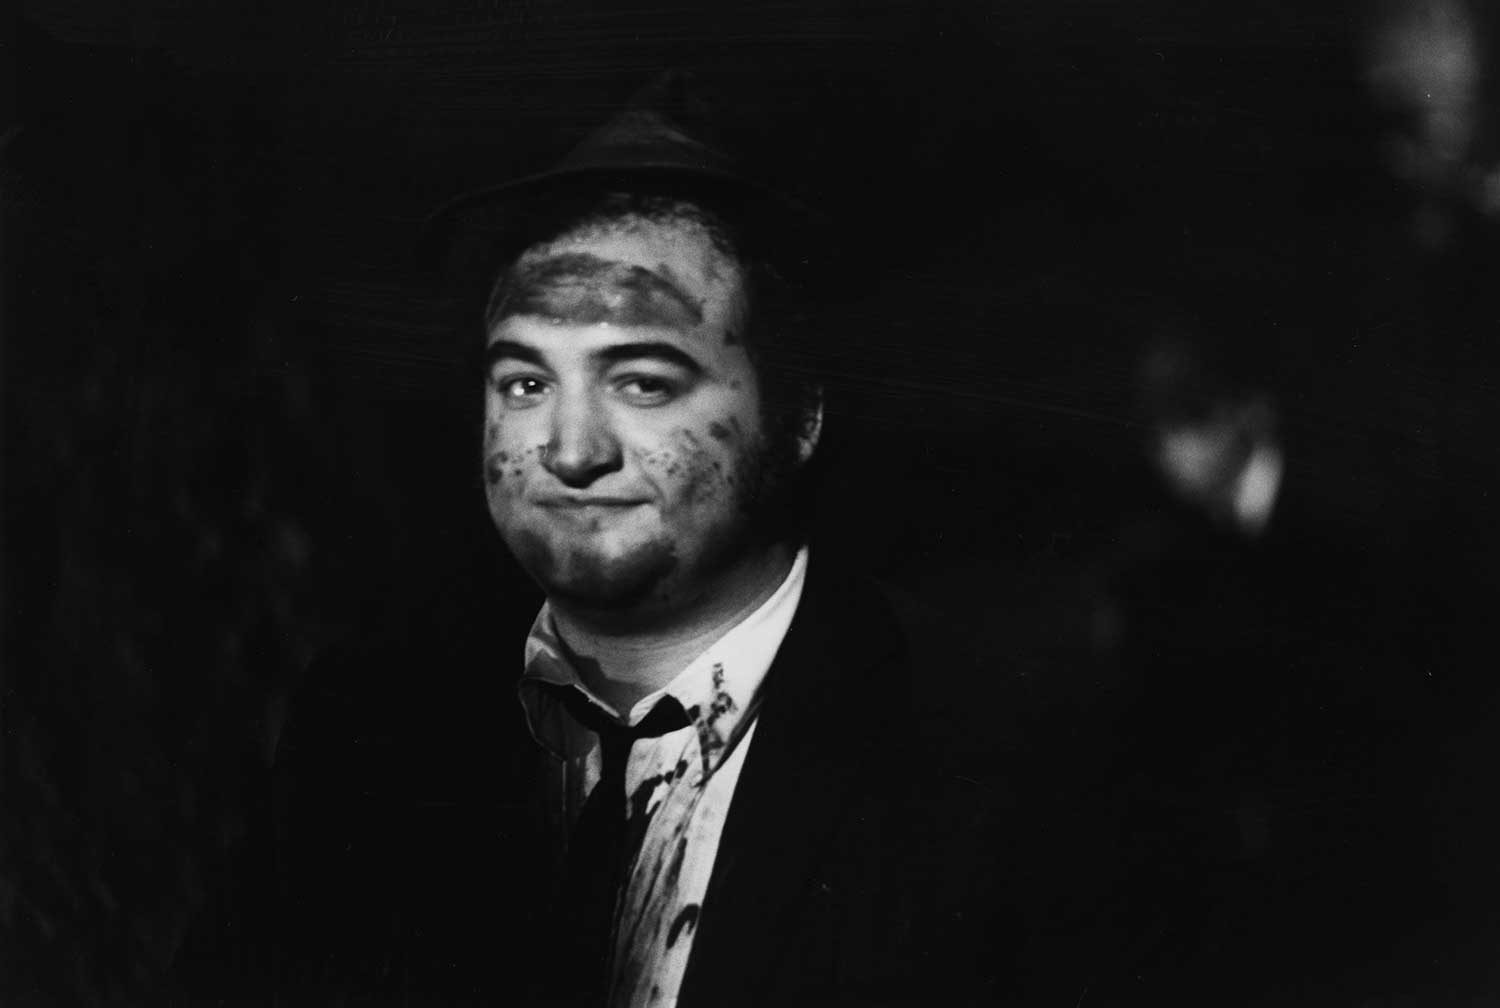 John Belushi takes a break during production of The Blues Brothers, which was mostly filmed in Chicago and made the city a familiar location for many 1980s movies.